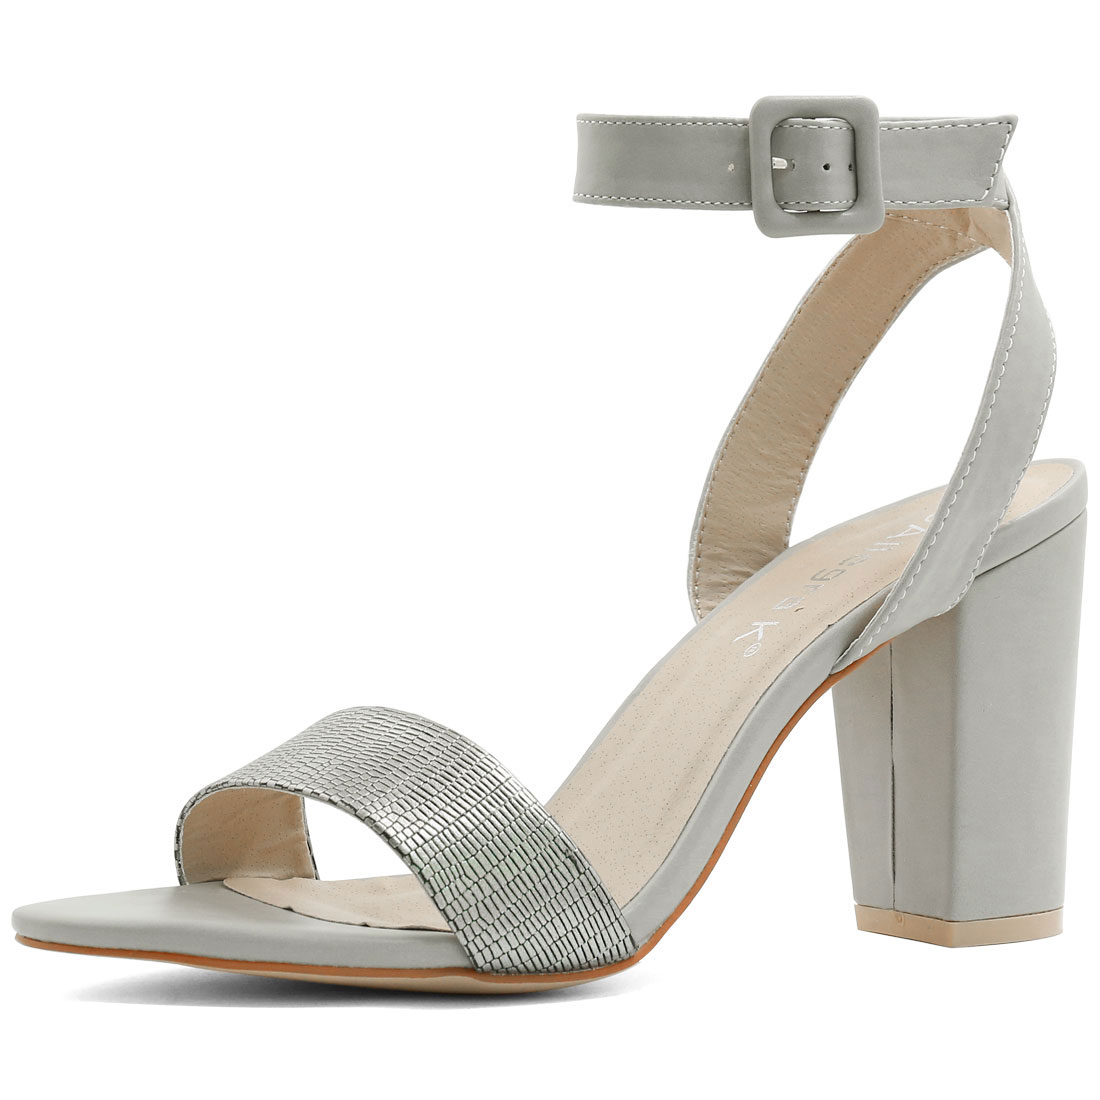 Woman Textured Vamp Chunky Heel Ankle Strap Sandals Silver US 7.5